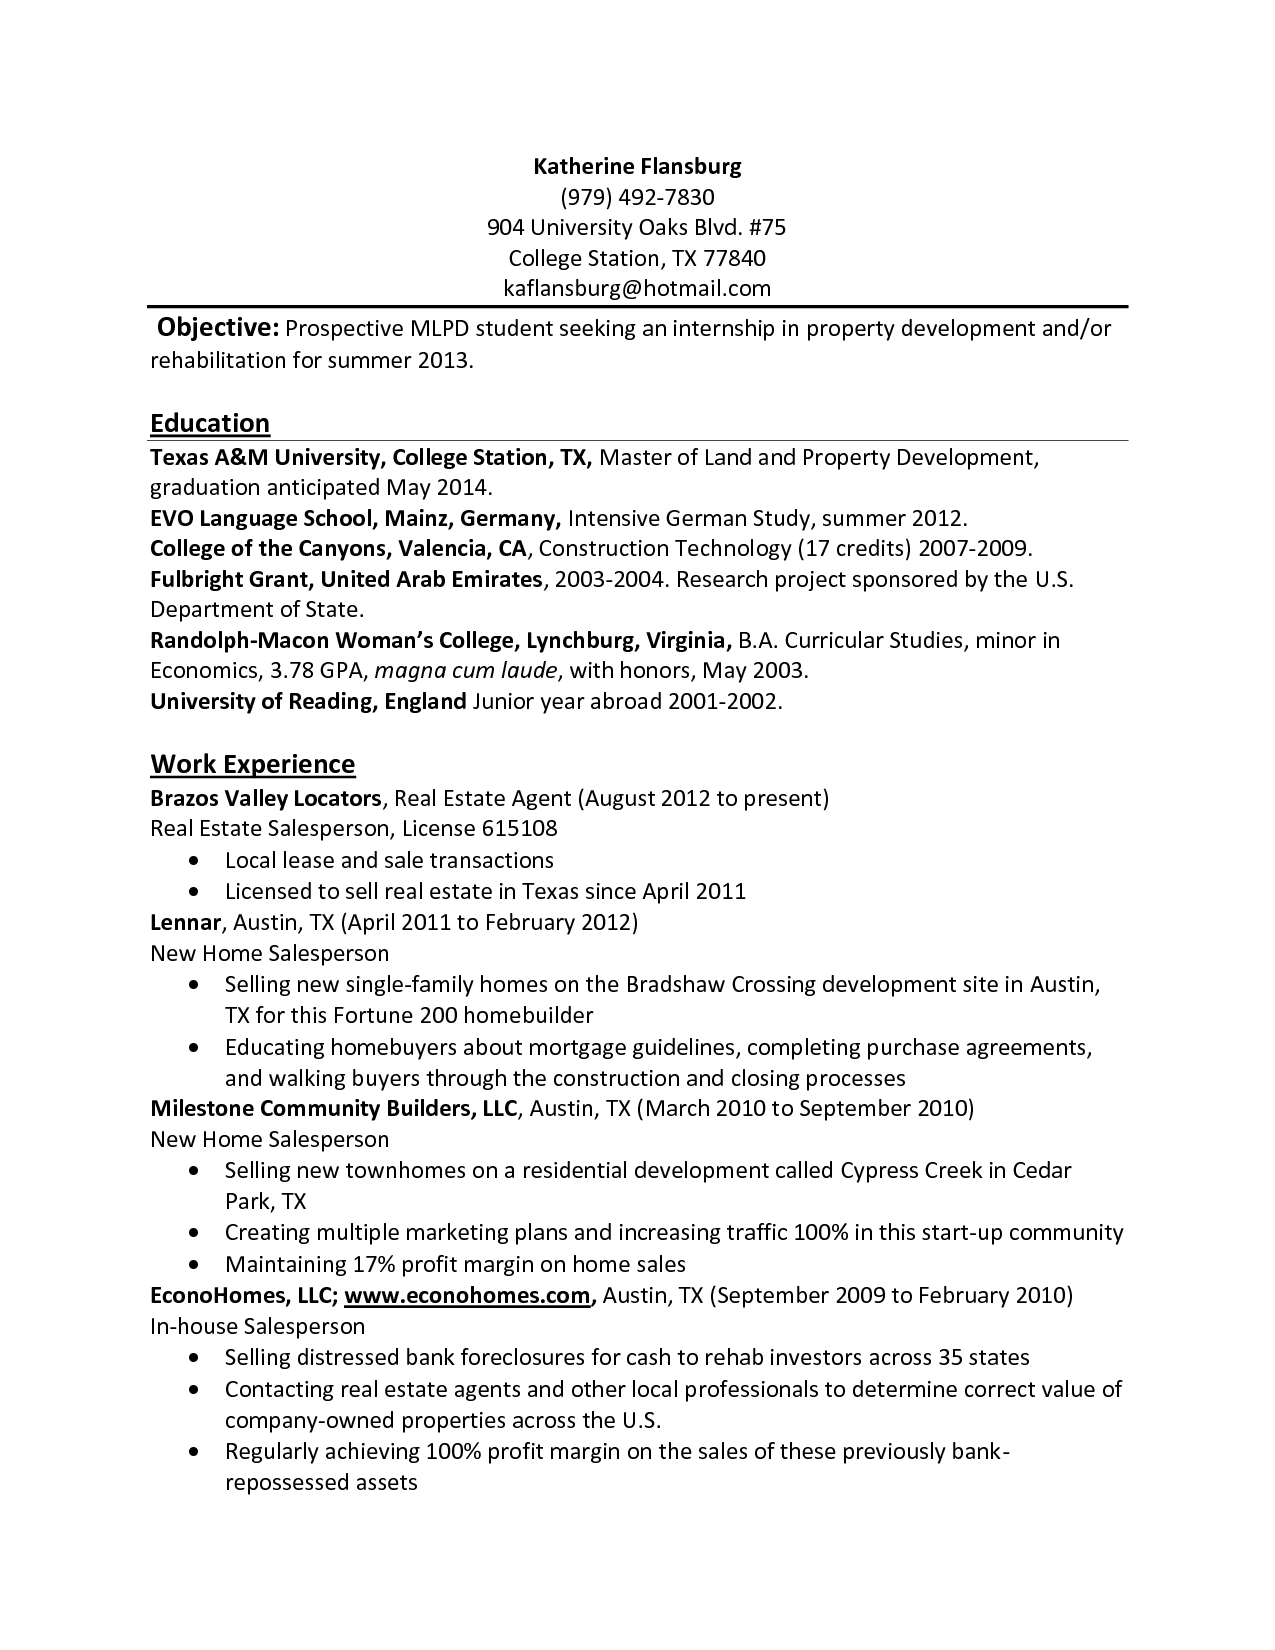 resume for undergraduate psychology students guide to the resume psychology iupui undergraduate resume sample for undergraduate - Sample Undergraduate Resume